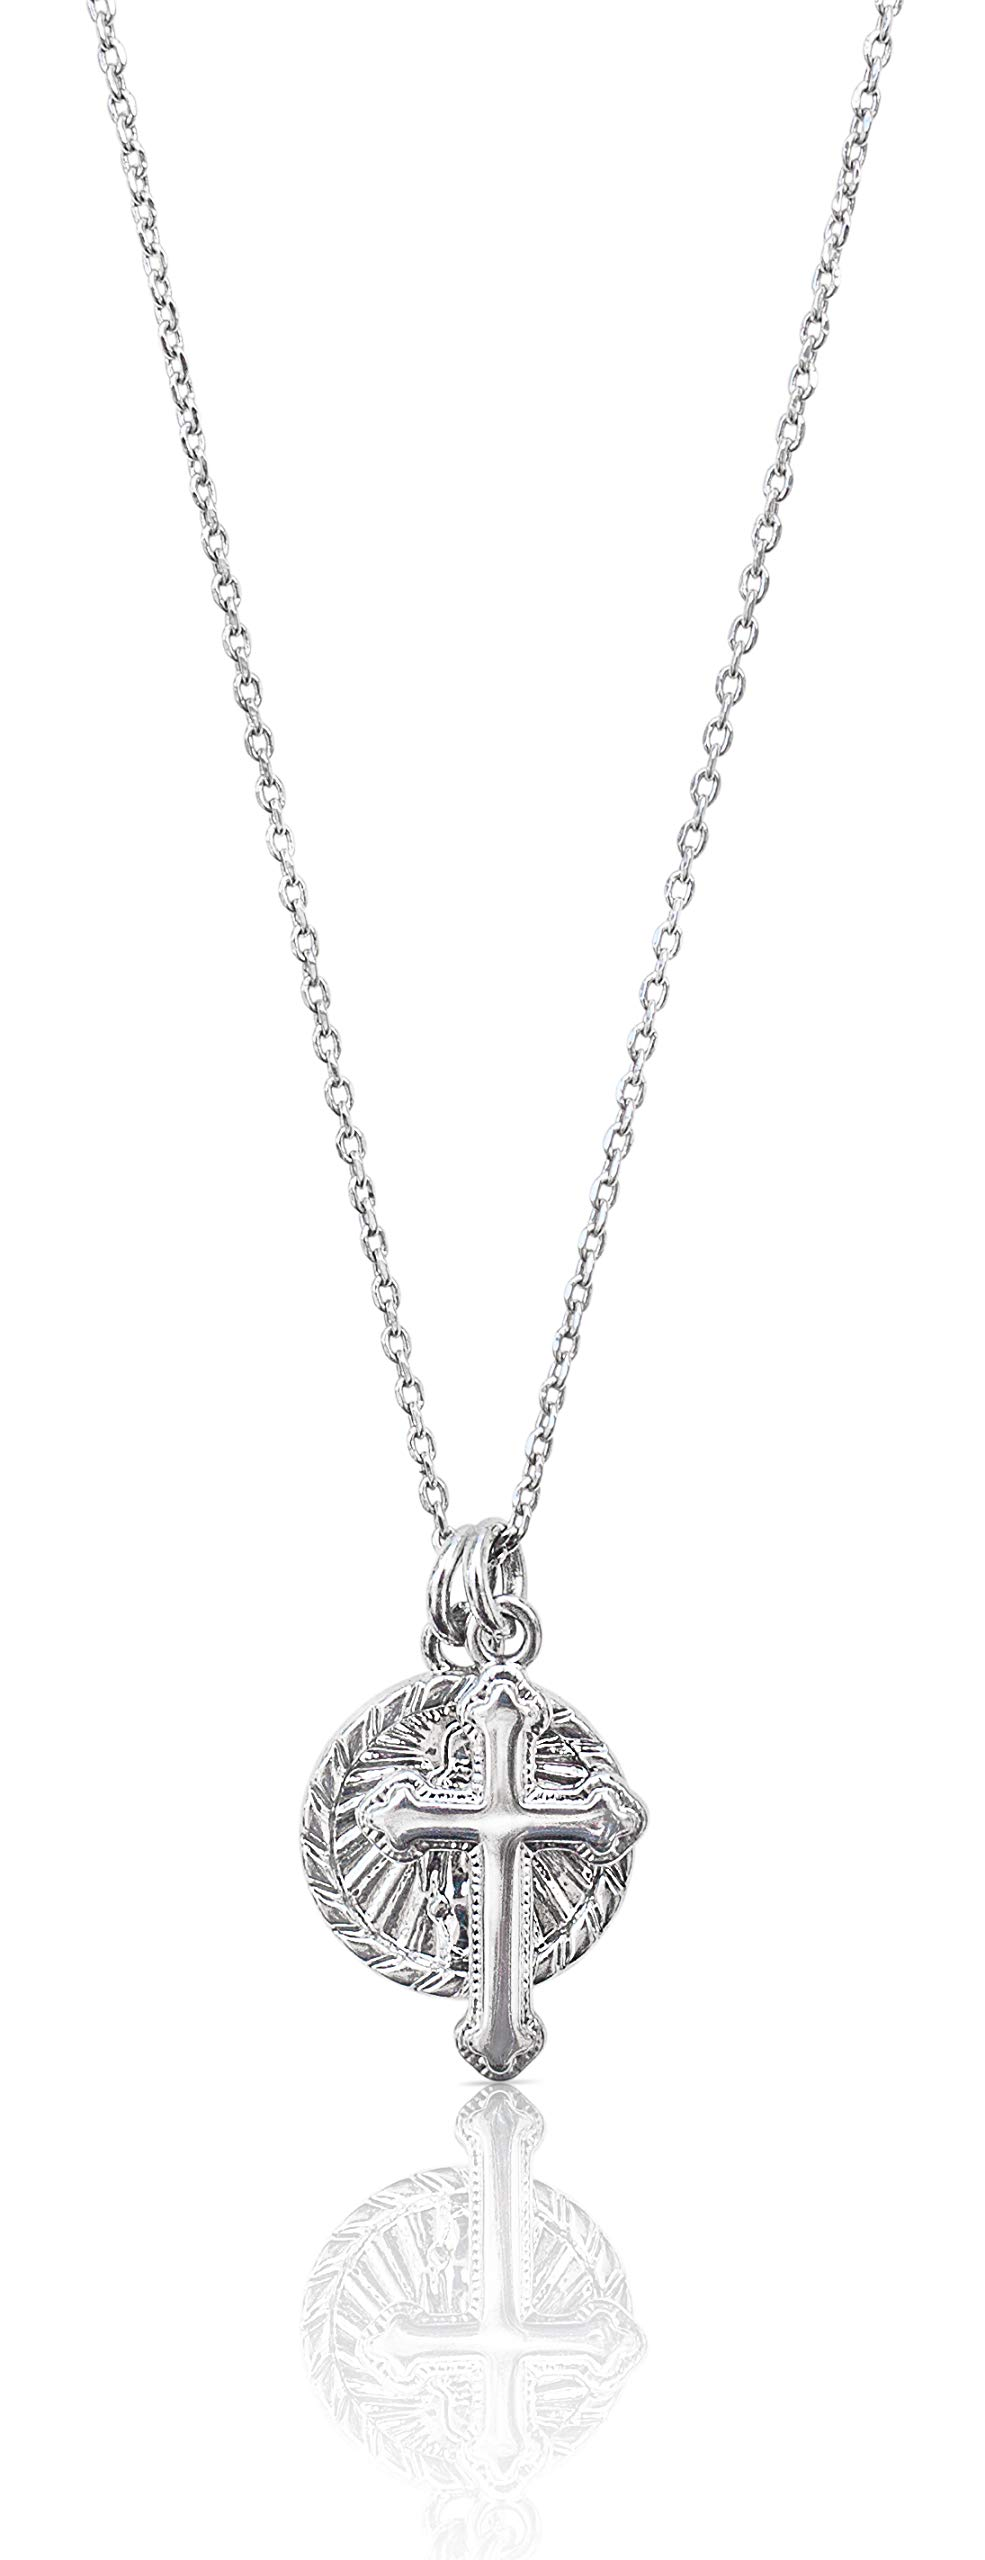 Benevolence LA Cross Necklace with Coin - 14k Pendant Necklace Medal Disc Circle Dainty 18 inch Necklaces for Women - Celebrity Endorsed